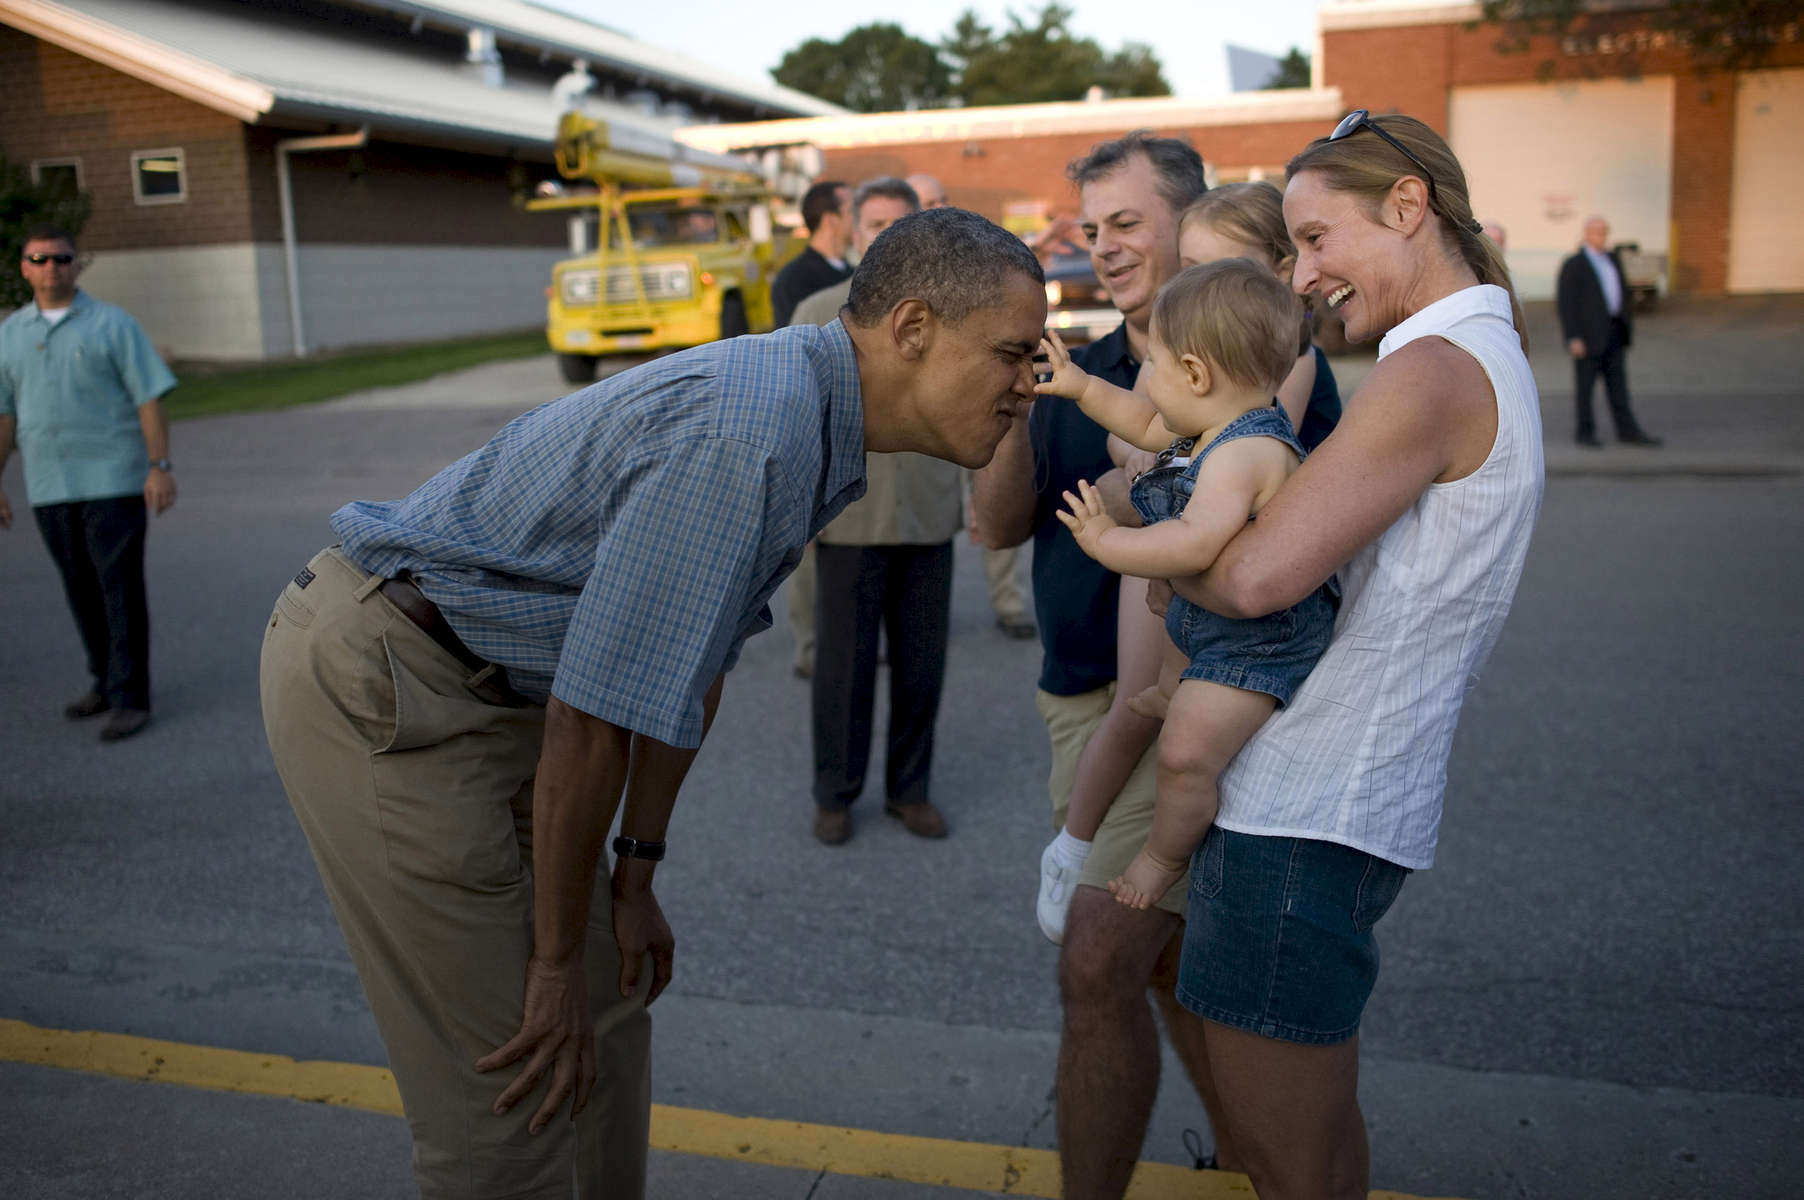 August 13, 2012- Des Moines, IA: A baby reaches out for President Barack Obama as he makes a face at the Iowa State Fair in Des Moines, IA. (Scout Tufankjian for Obama for America/Polaris)